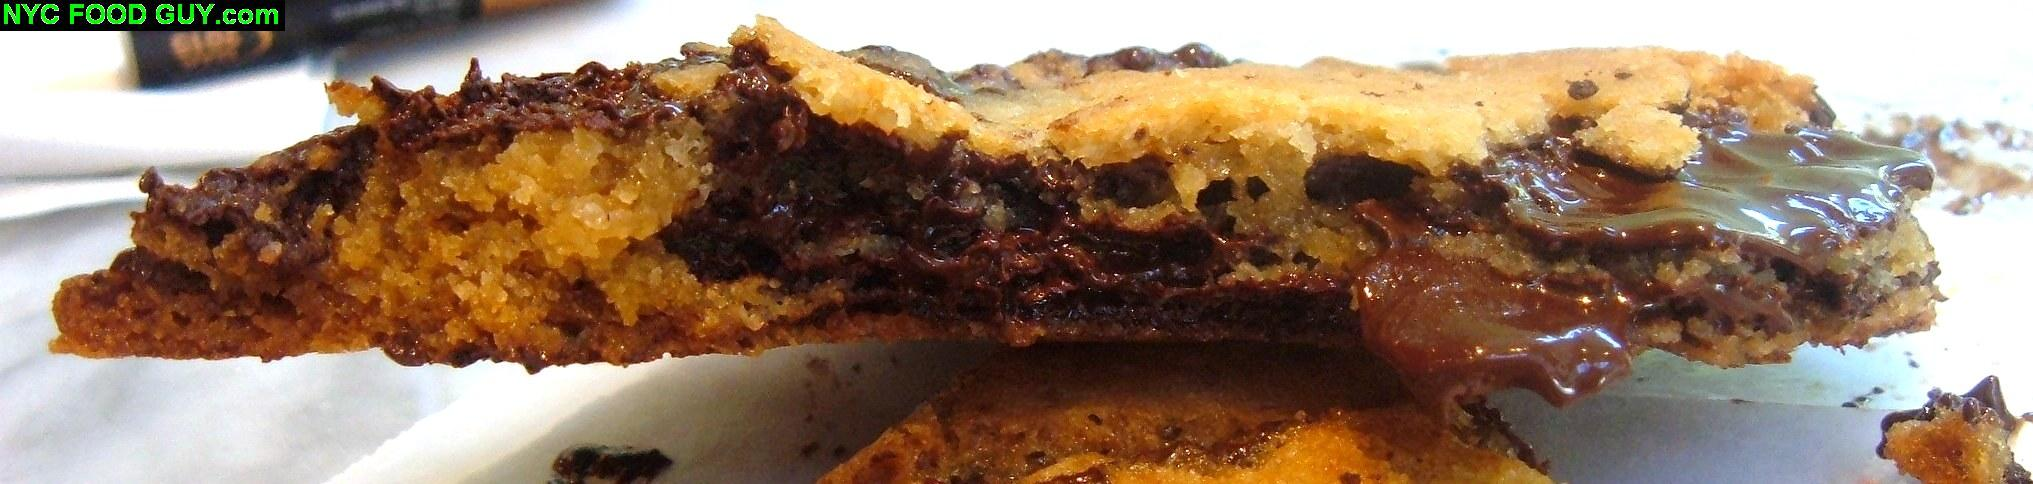 So Is It Better Than Levain S Chocolate Chip Walnut